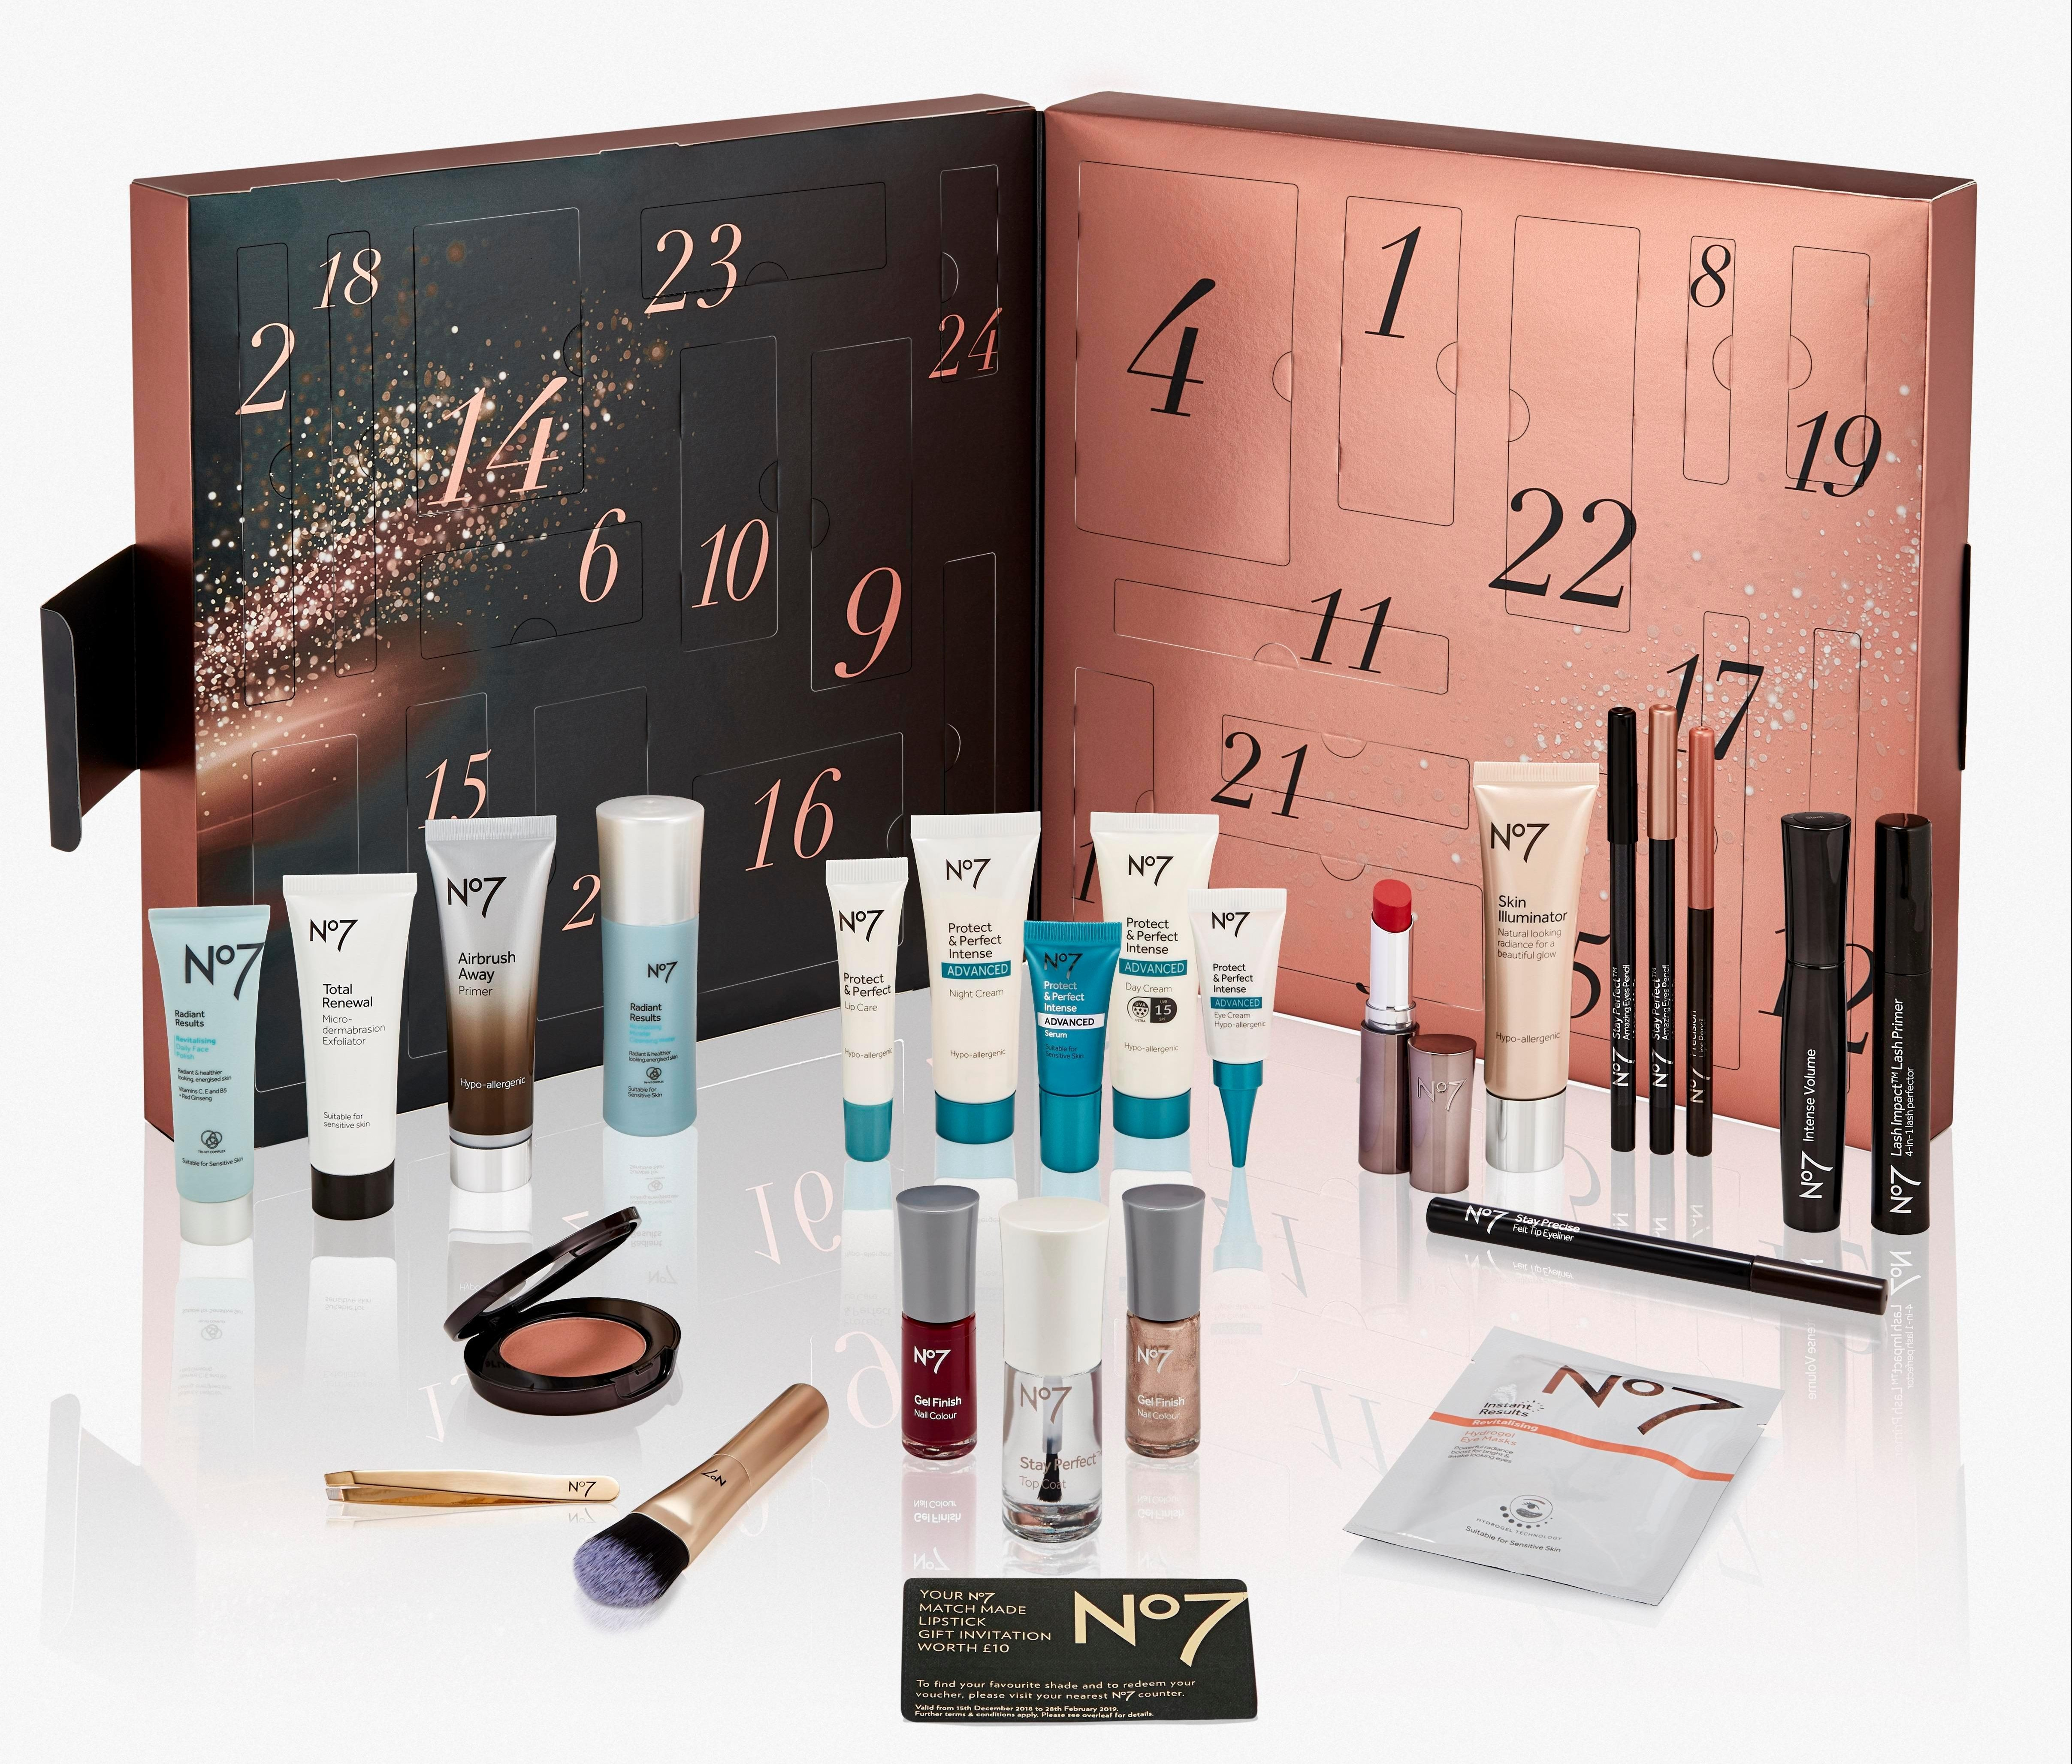 Boots Teases Its No7 Beauty Advent Calendar Which Is So